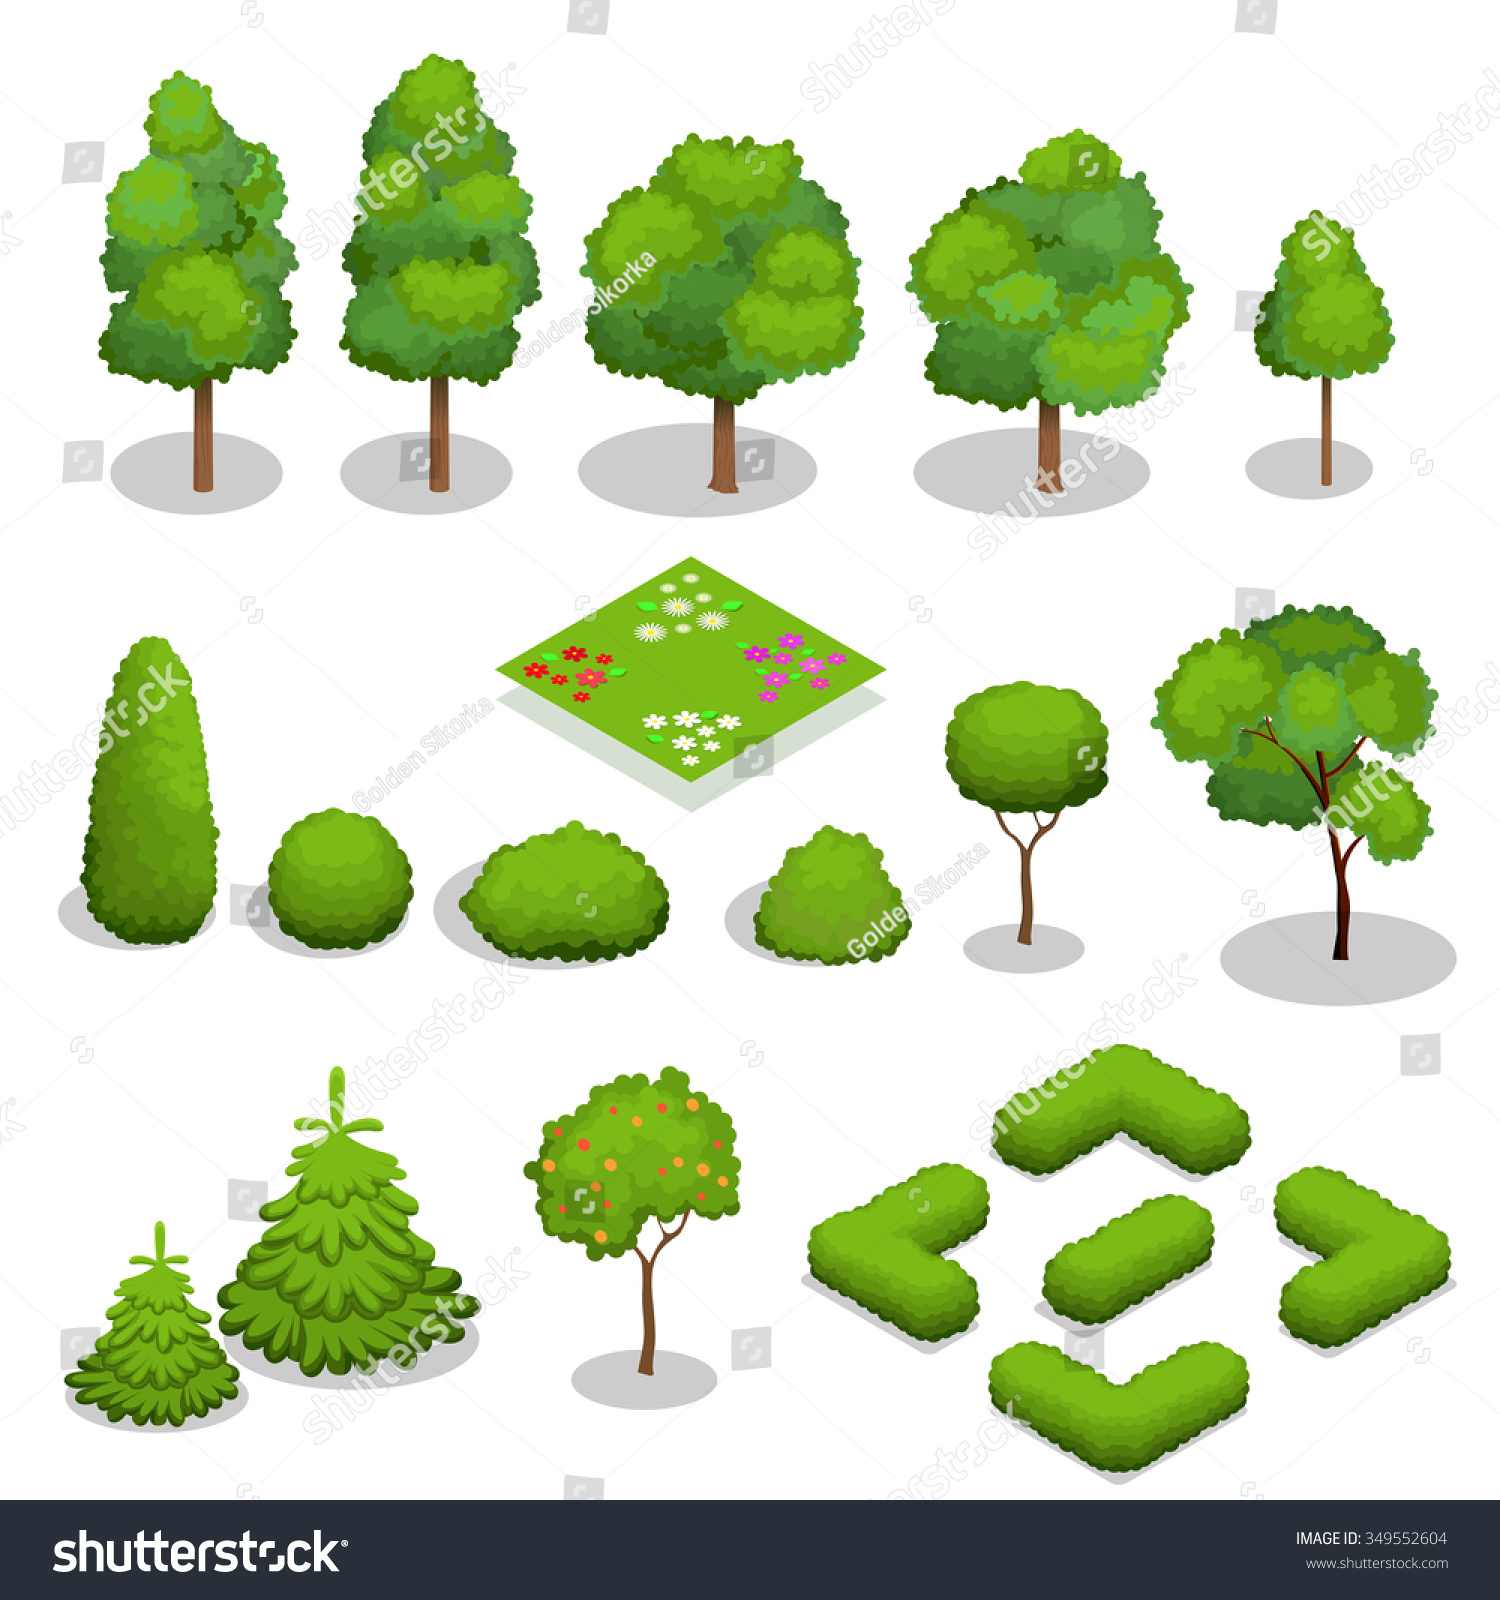 Trees Vector. Trees Icon. Trees Green. Trees New. Trees